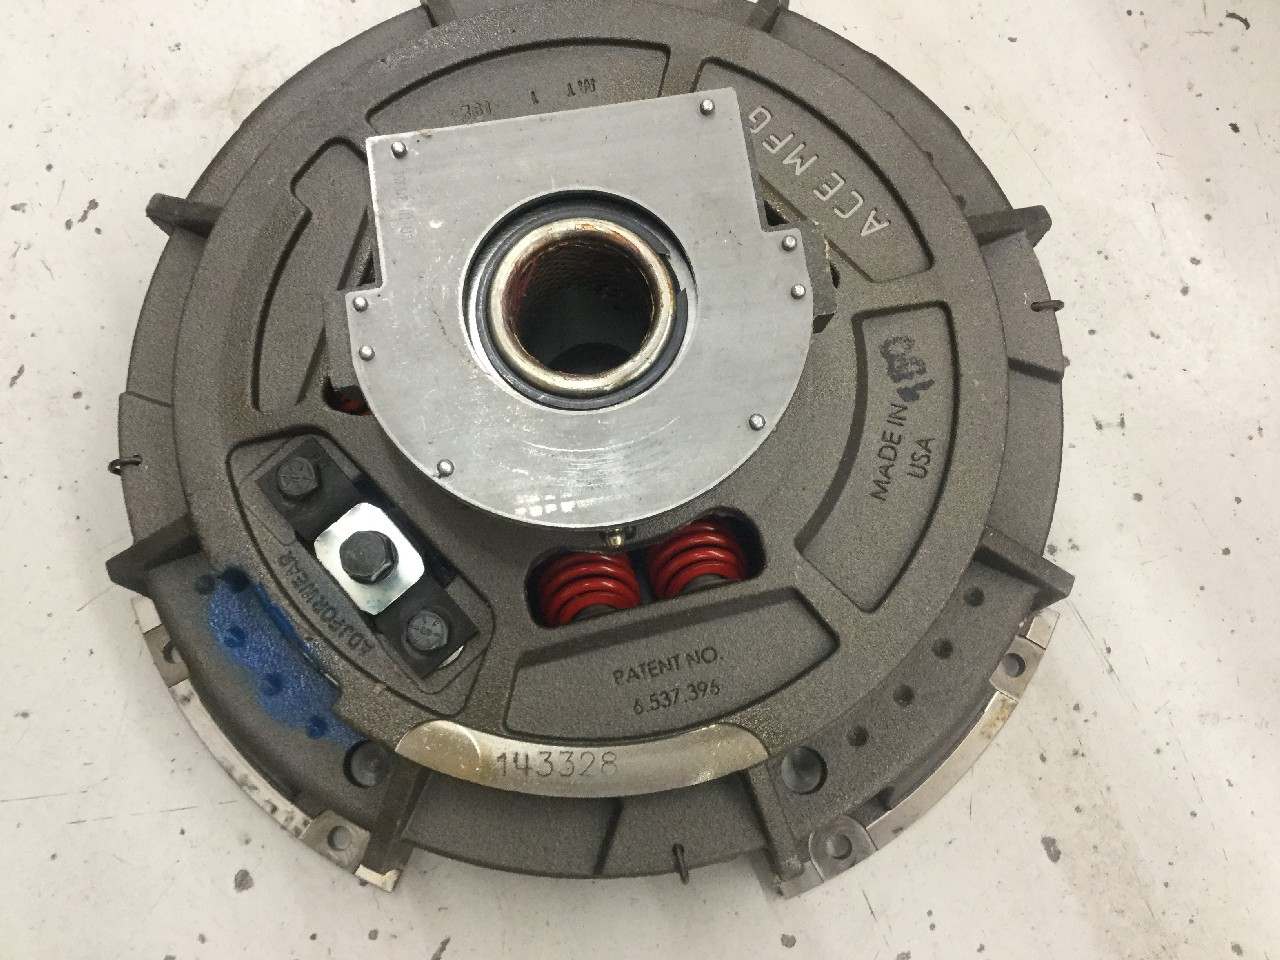 ACE Manufacturing C237-8 Clutch Assembly